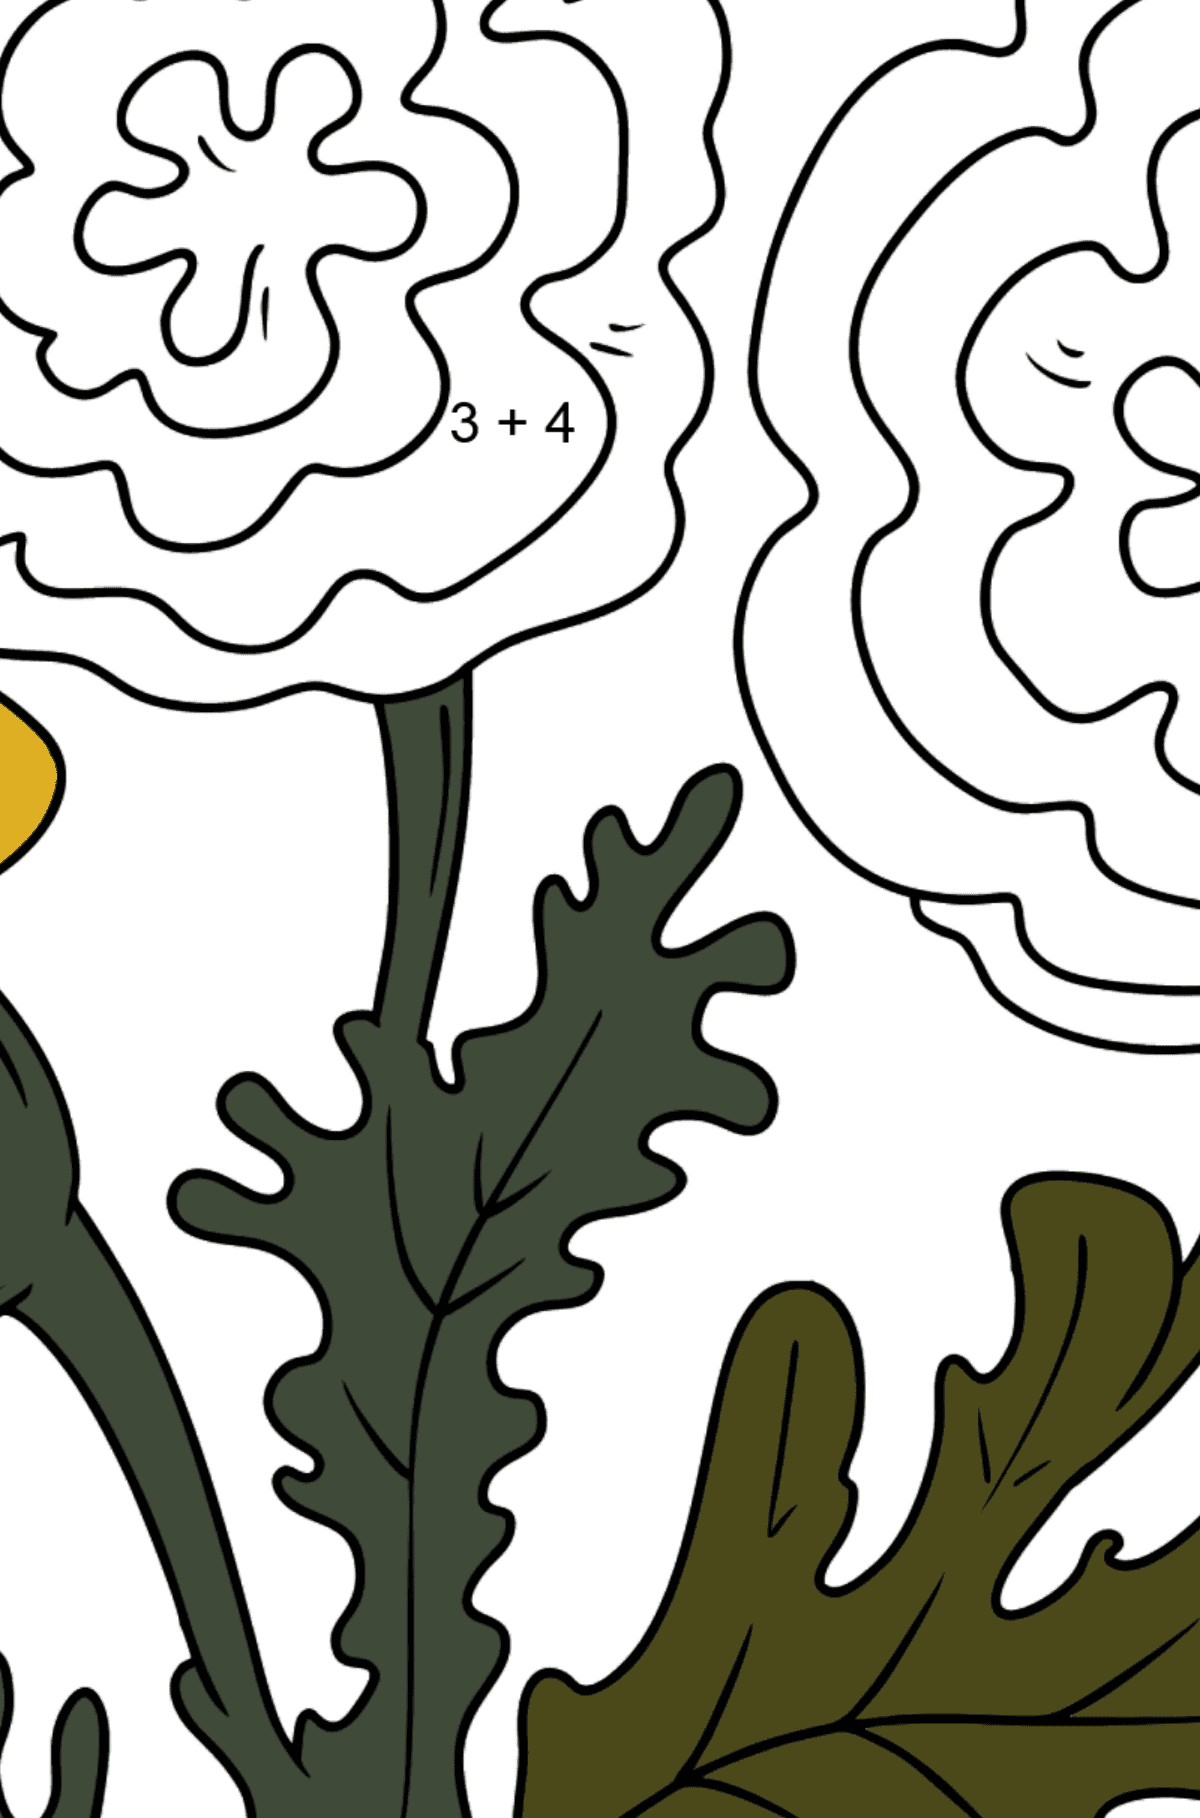 Coloring Page - Autumn flowers - Math Coloring - Addition for Kids